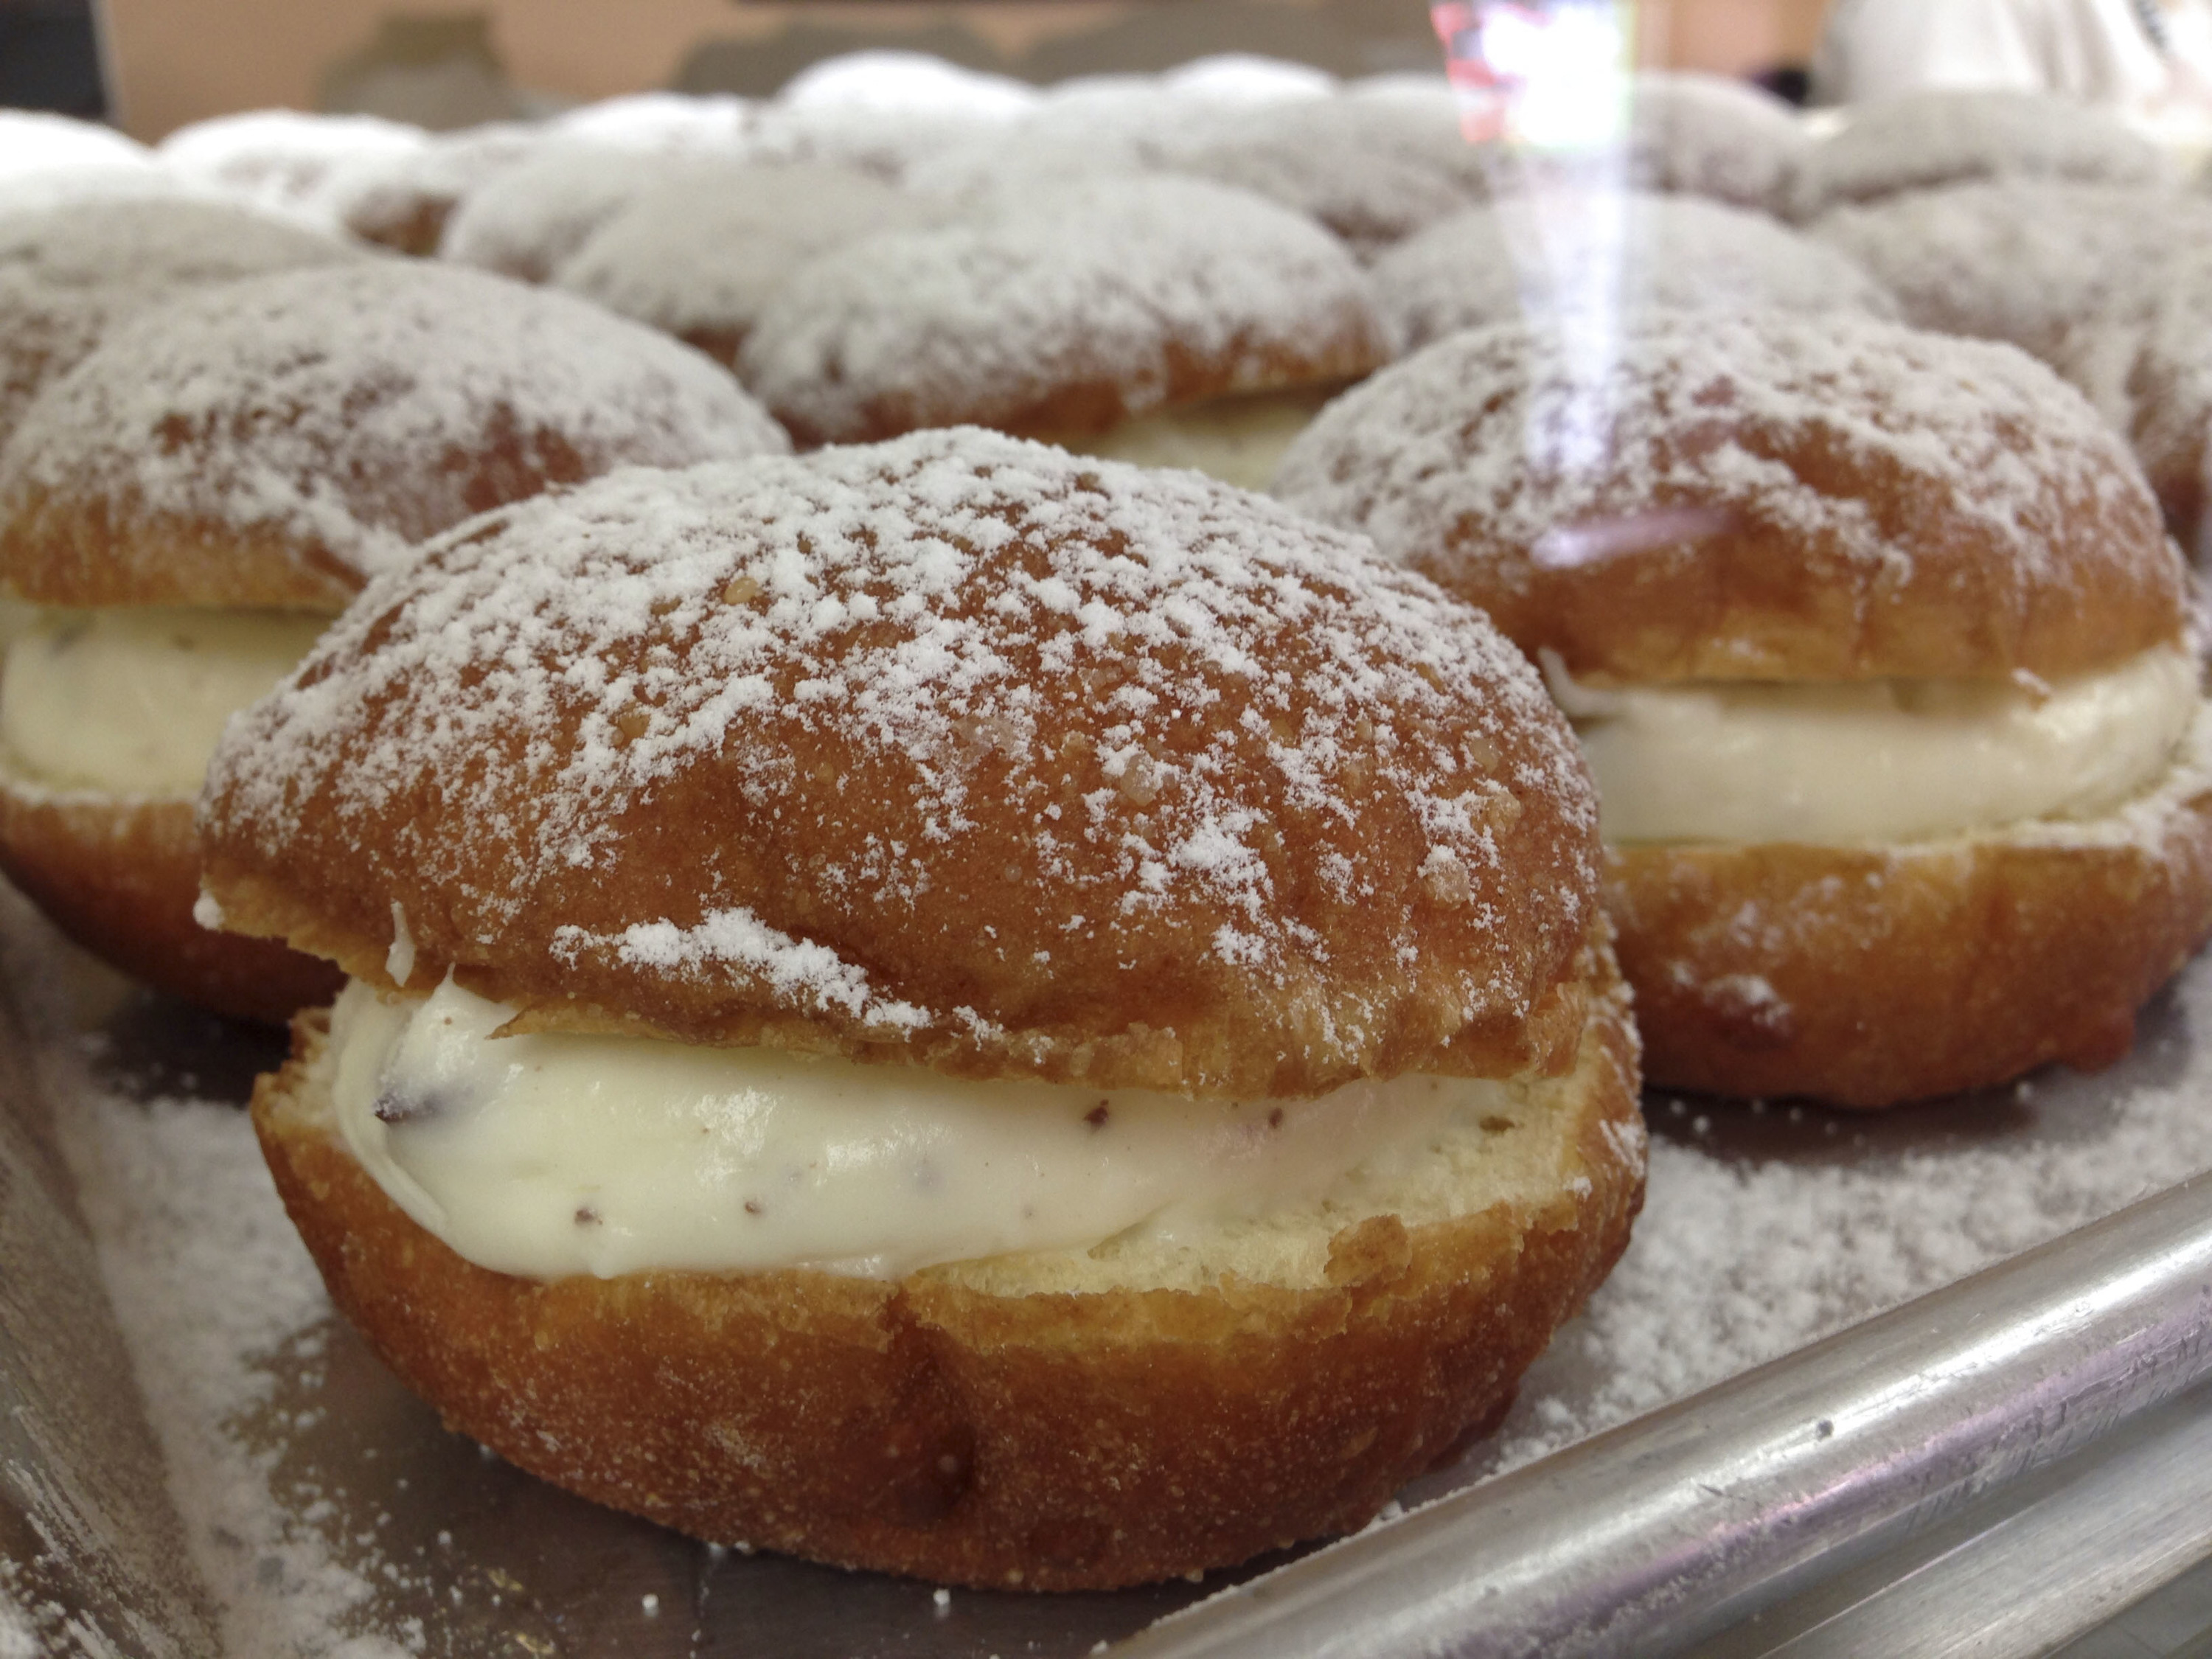 Paczki Time Places To Find The Fried Polish Pastry